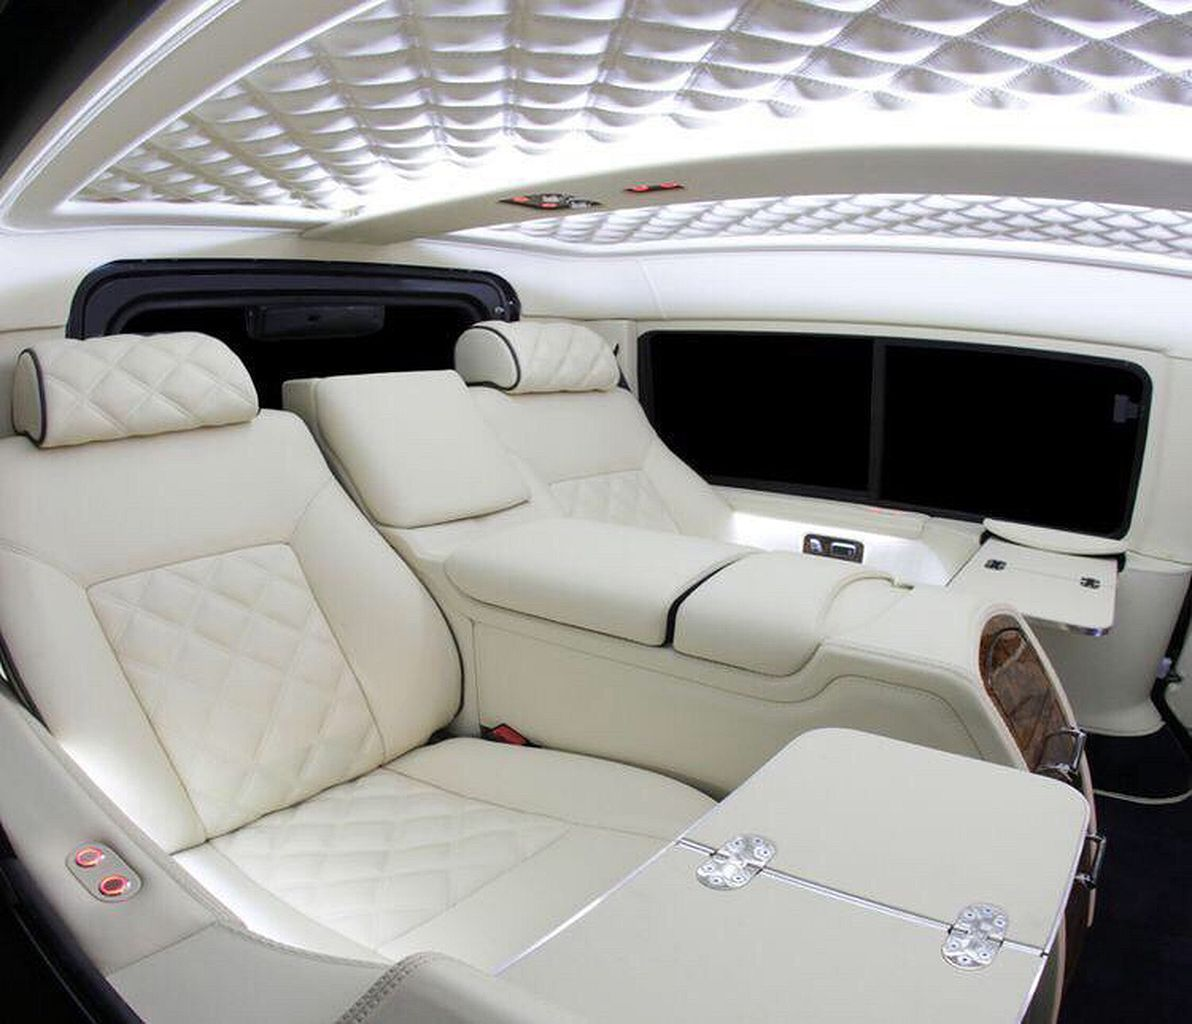 Discover The Best Luxury Lifestyle Inspiration For Your Next Interior Design Project On Our Blog Fo Luxury Car Interior Custom Car Interior Sports Cars Luxury